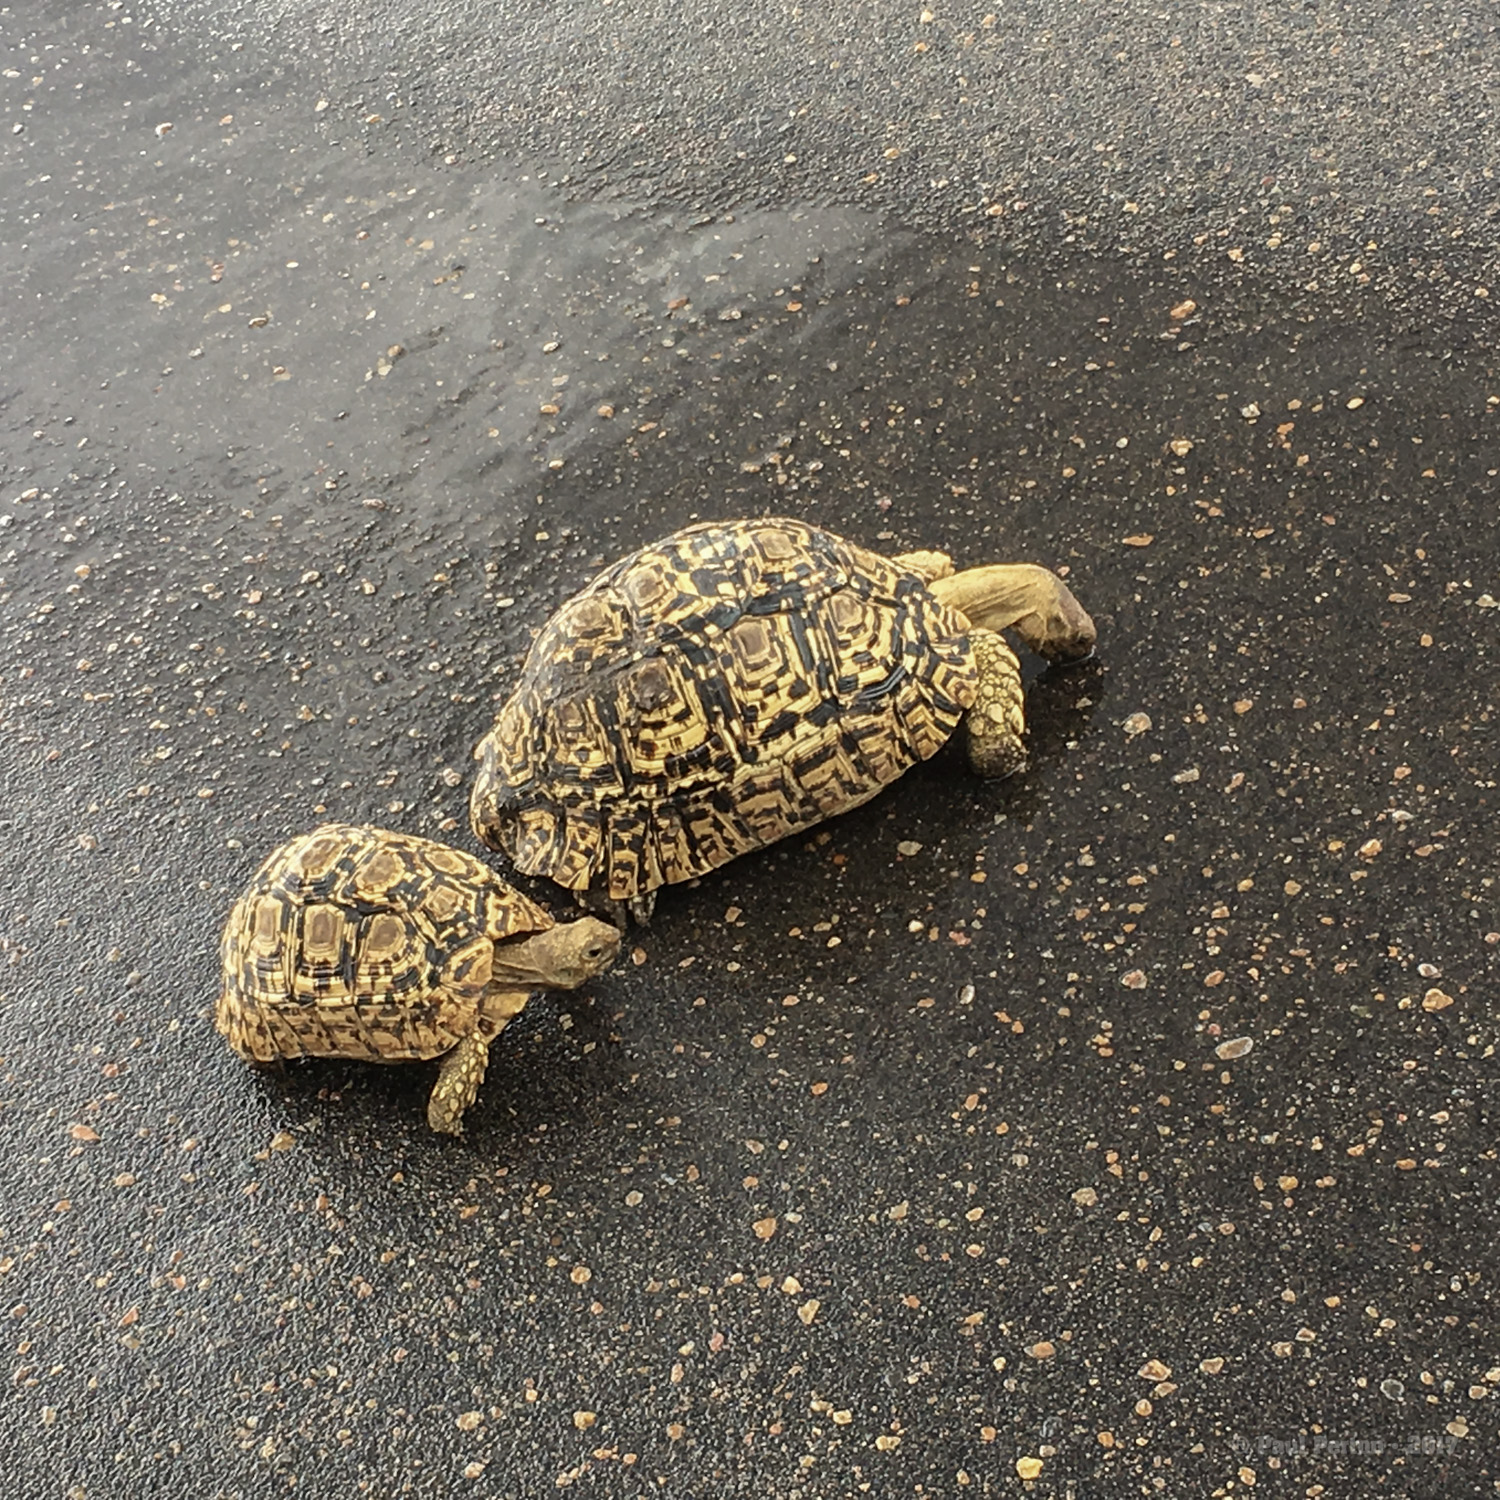 Leopard tortoises drinking from puddles caused by a recent rain shower.